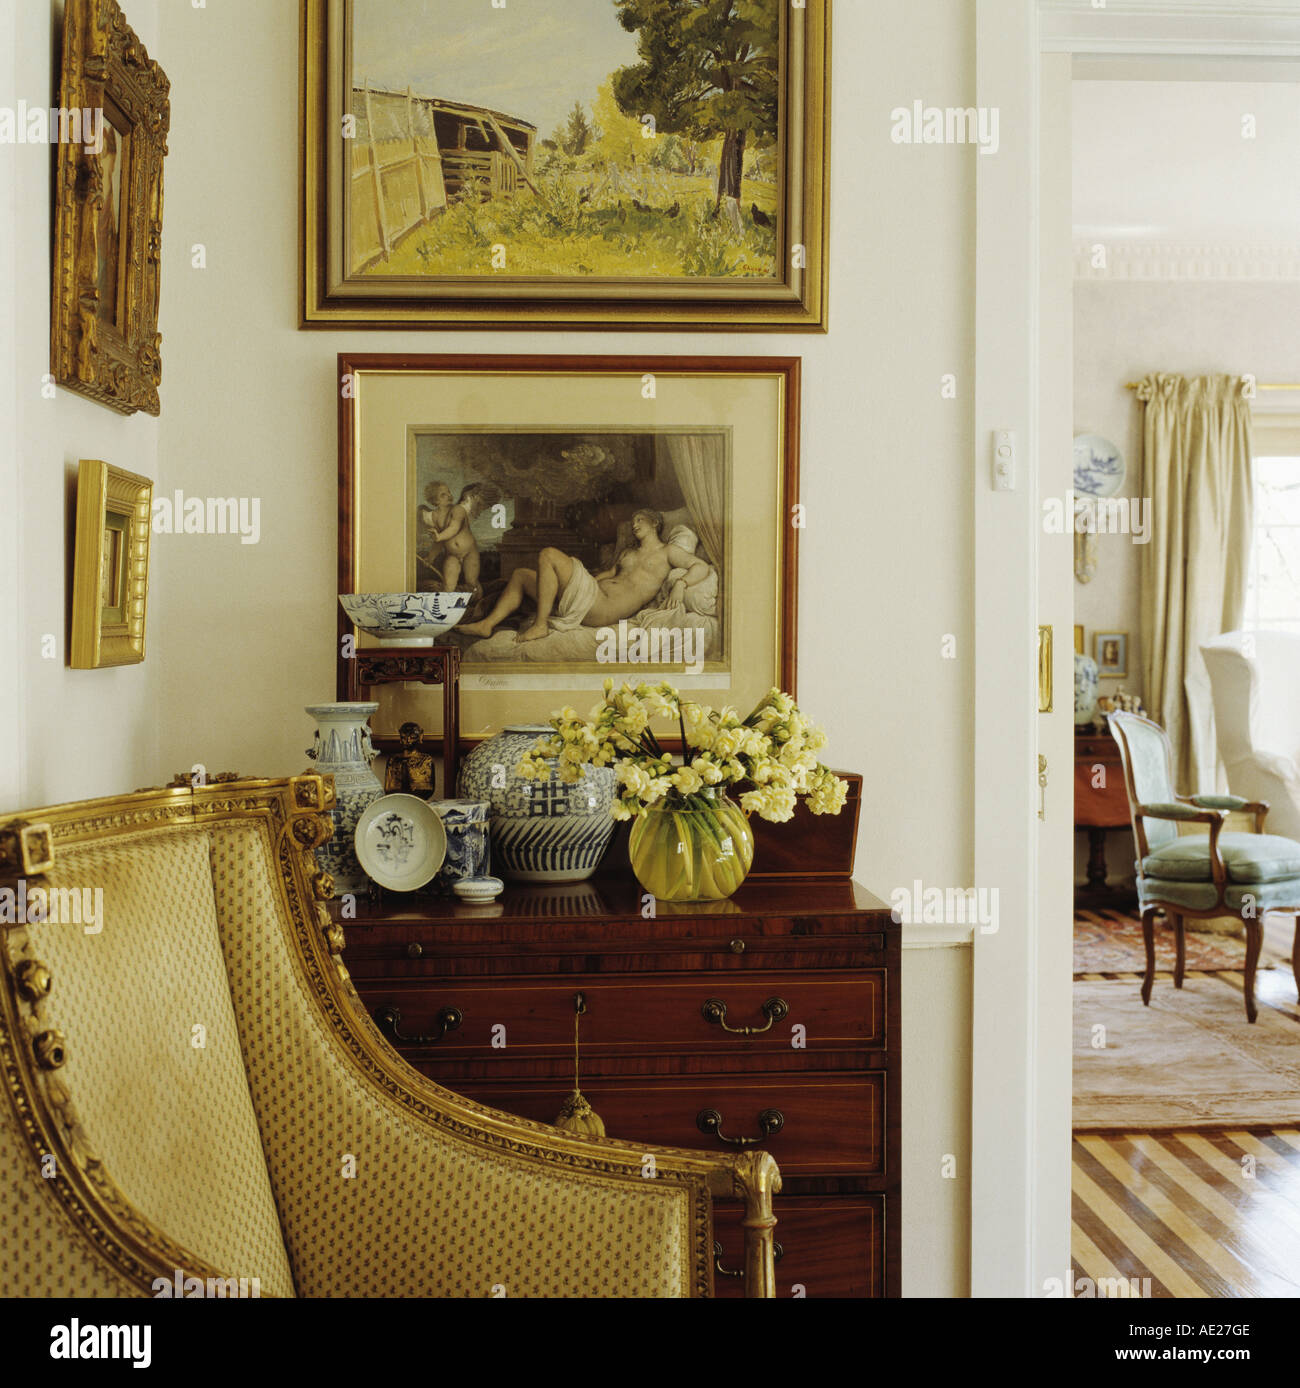 Pictures On Wall Above Antique Chest Of Drawers Beside Gold Armchair In  Corner Of Living Room